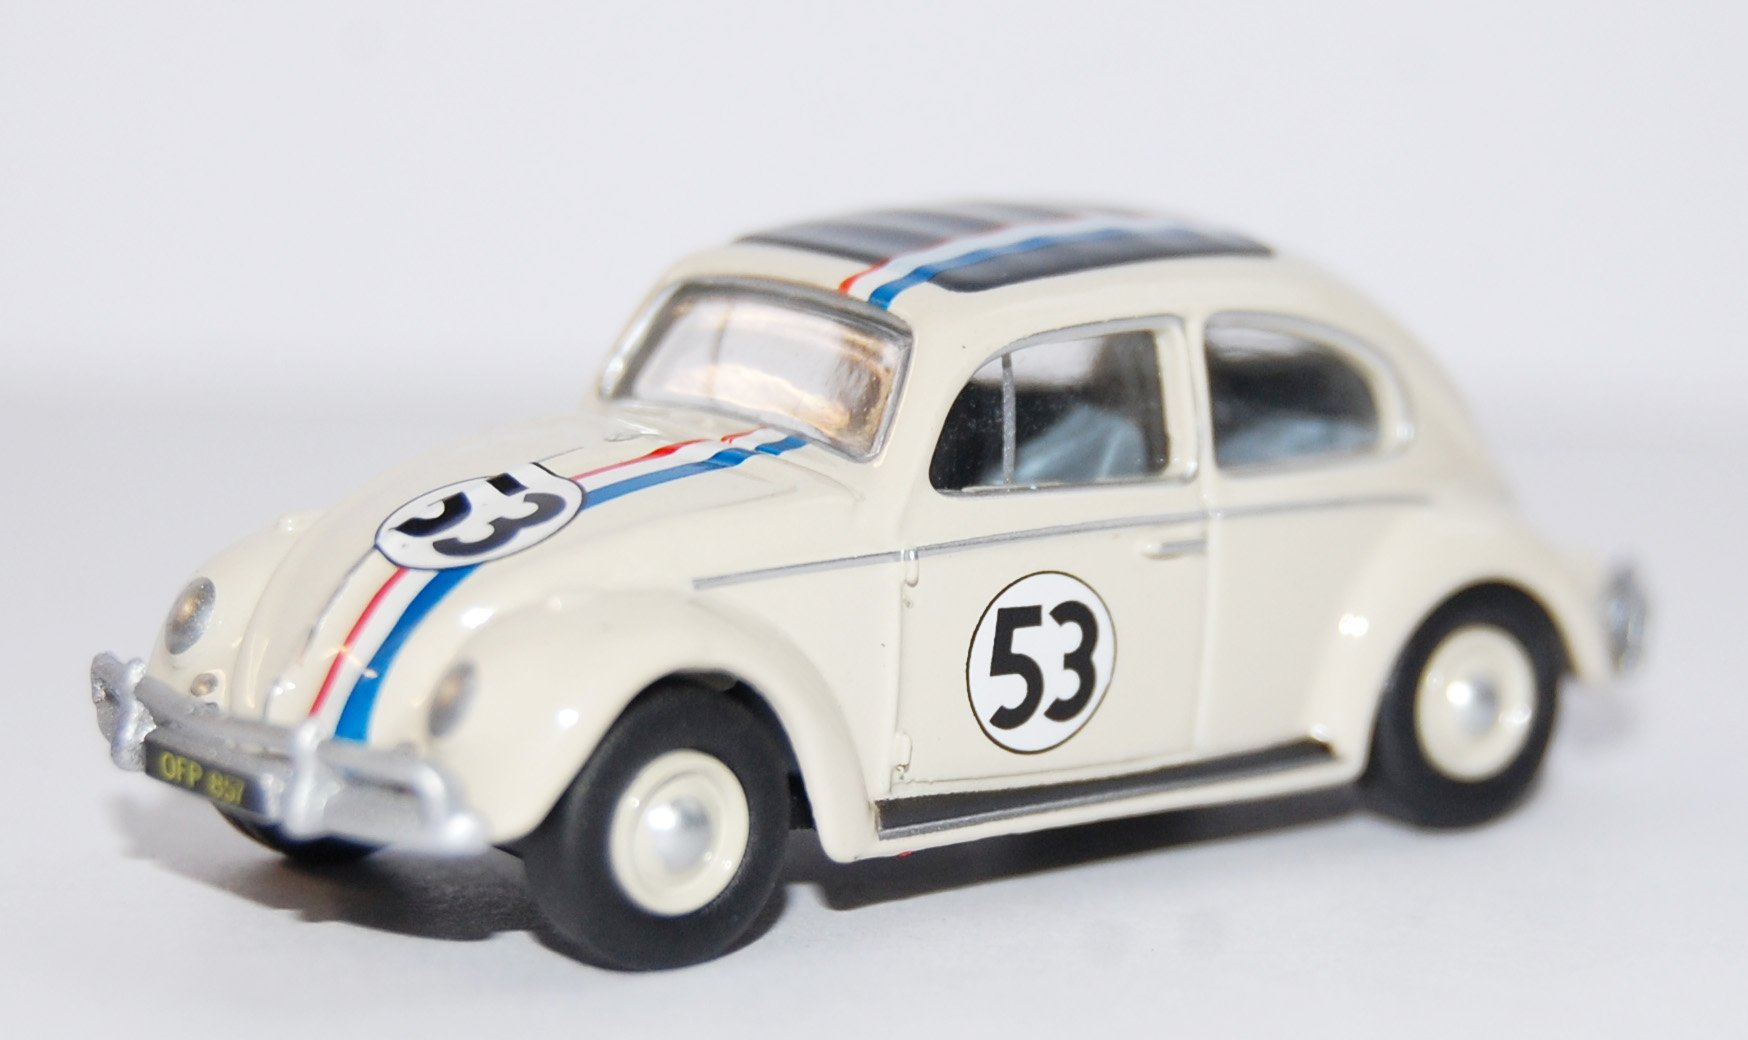 VW beetle Export, Herbie, No.53, 1963, Model Car, Ready-made, Oxford 1:76